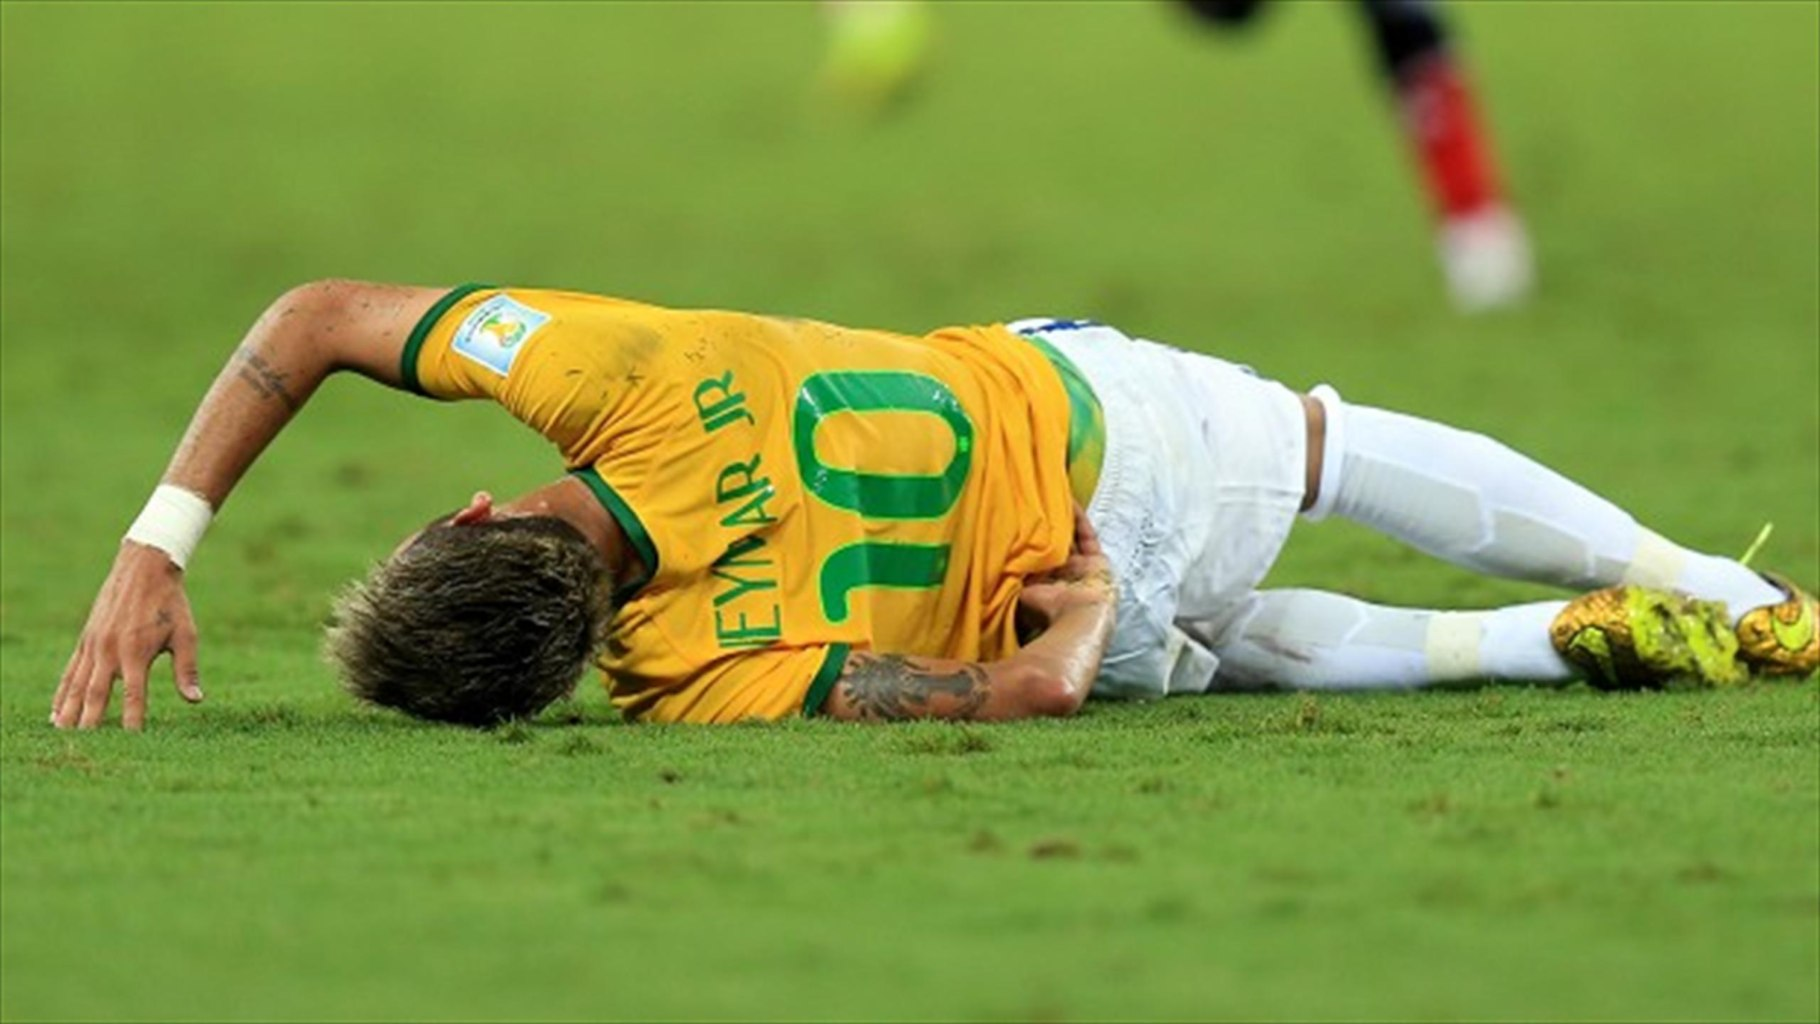 Neymar could have been in a wheelchair after his injury where he got with a knee on his back